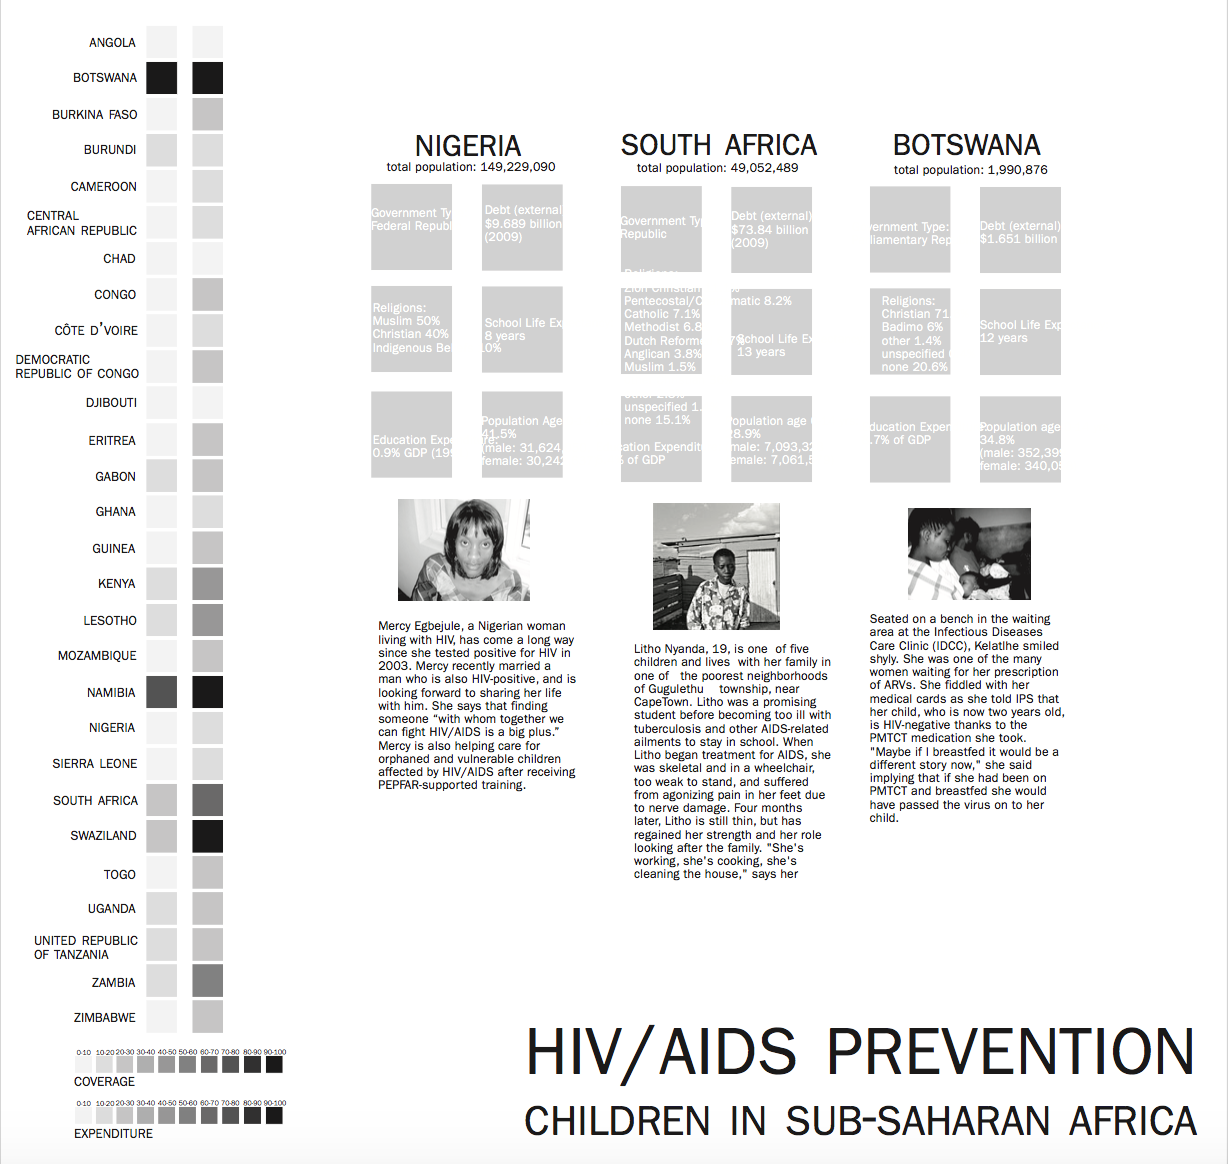 After acquiring more concrete data, this was a deep-dive into exploring those directly affected by HIV/AIDS across the world.